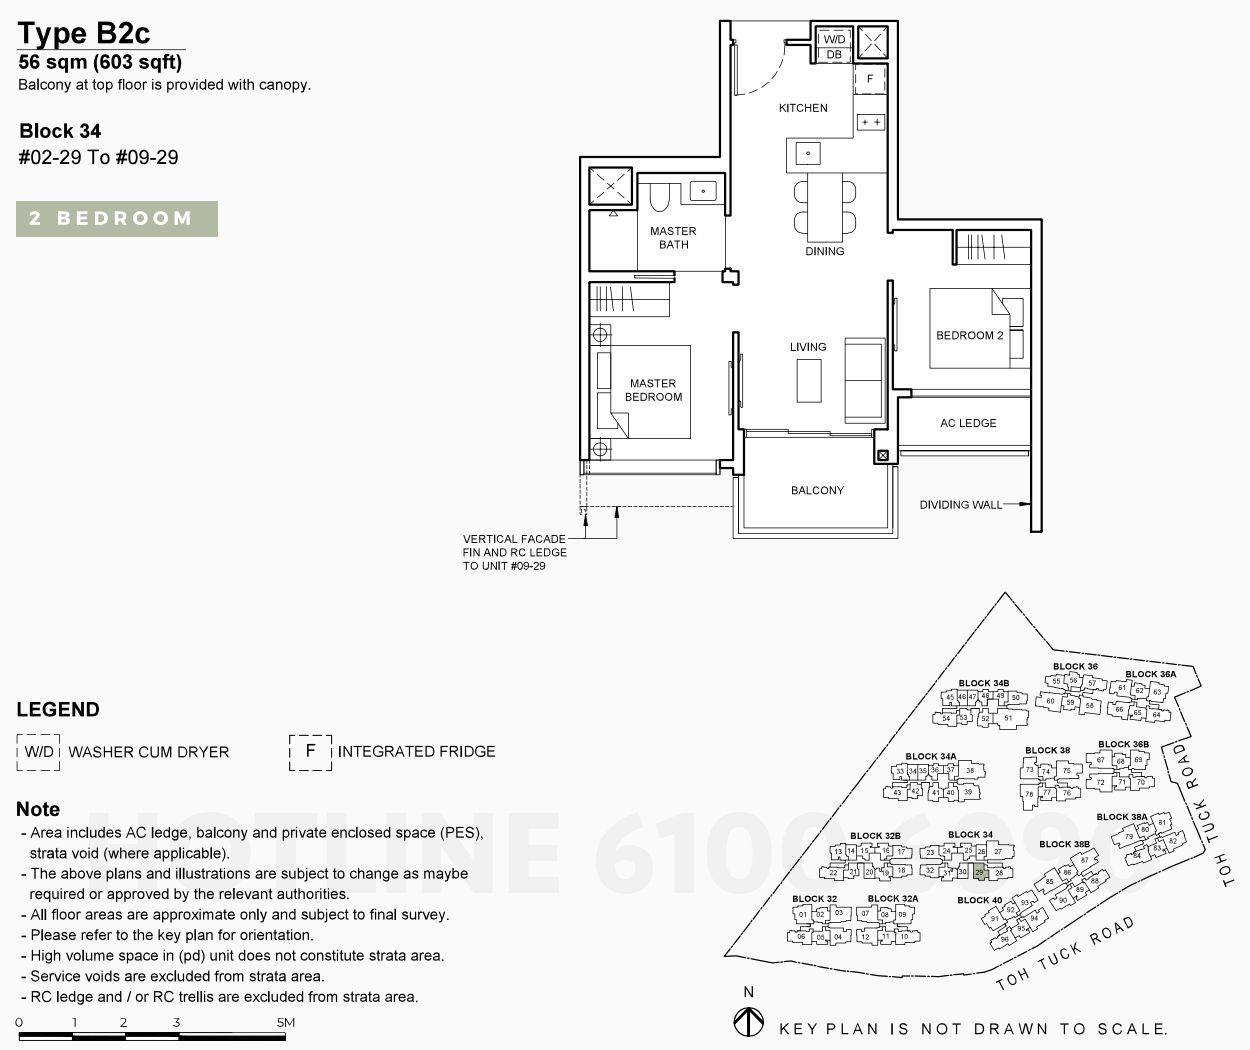 Floor Plans . 2 Bedroom Type B2c